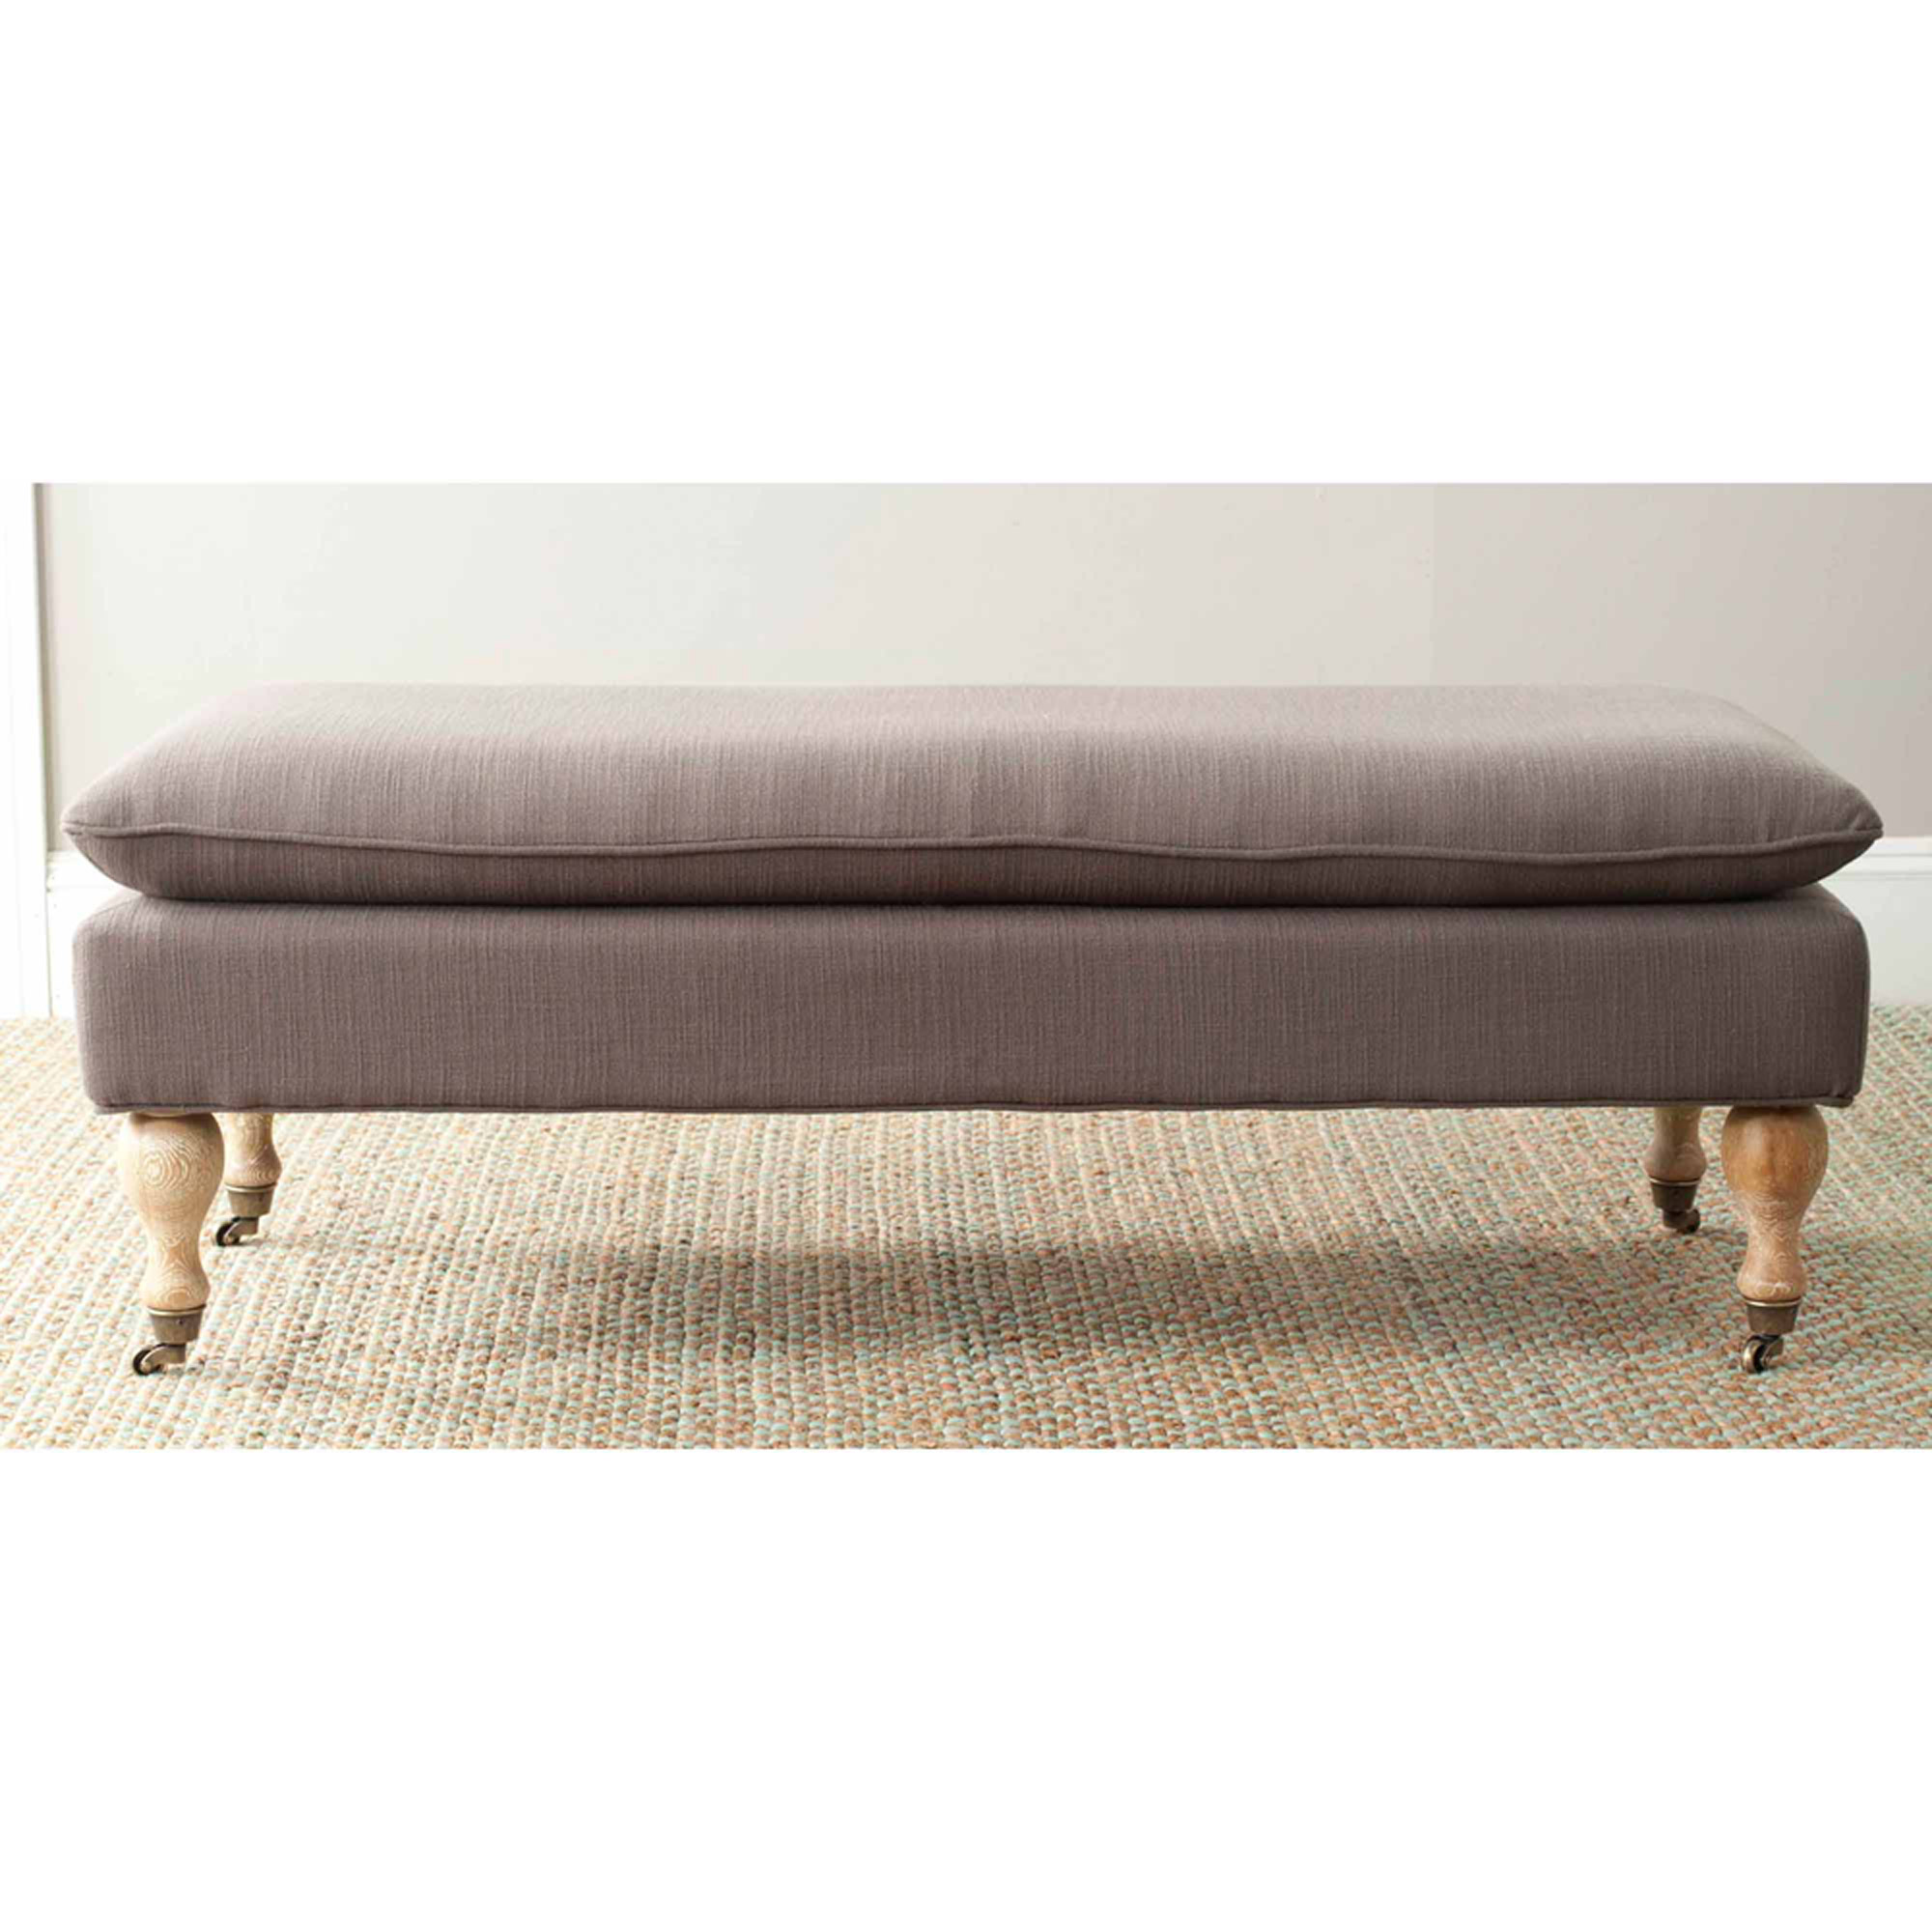 Safavieh Hampton Pillowtop Bench, Multiple Colors